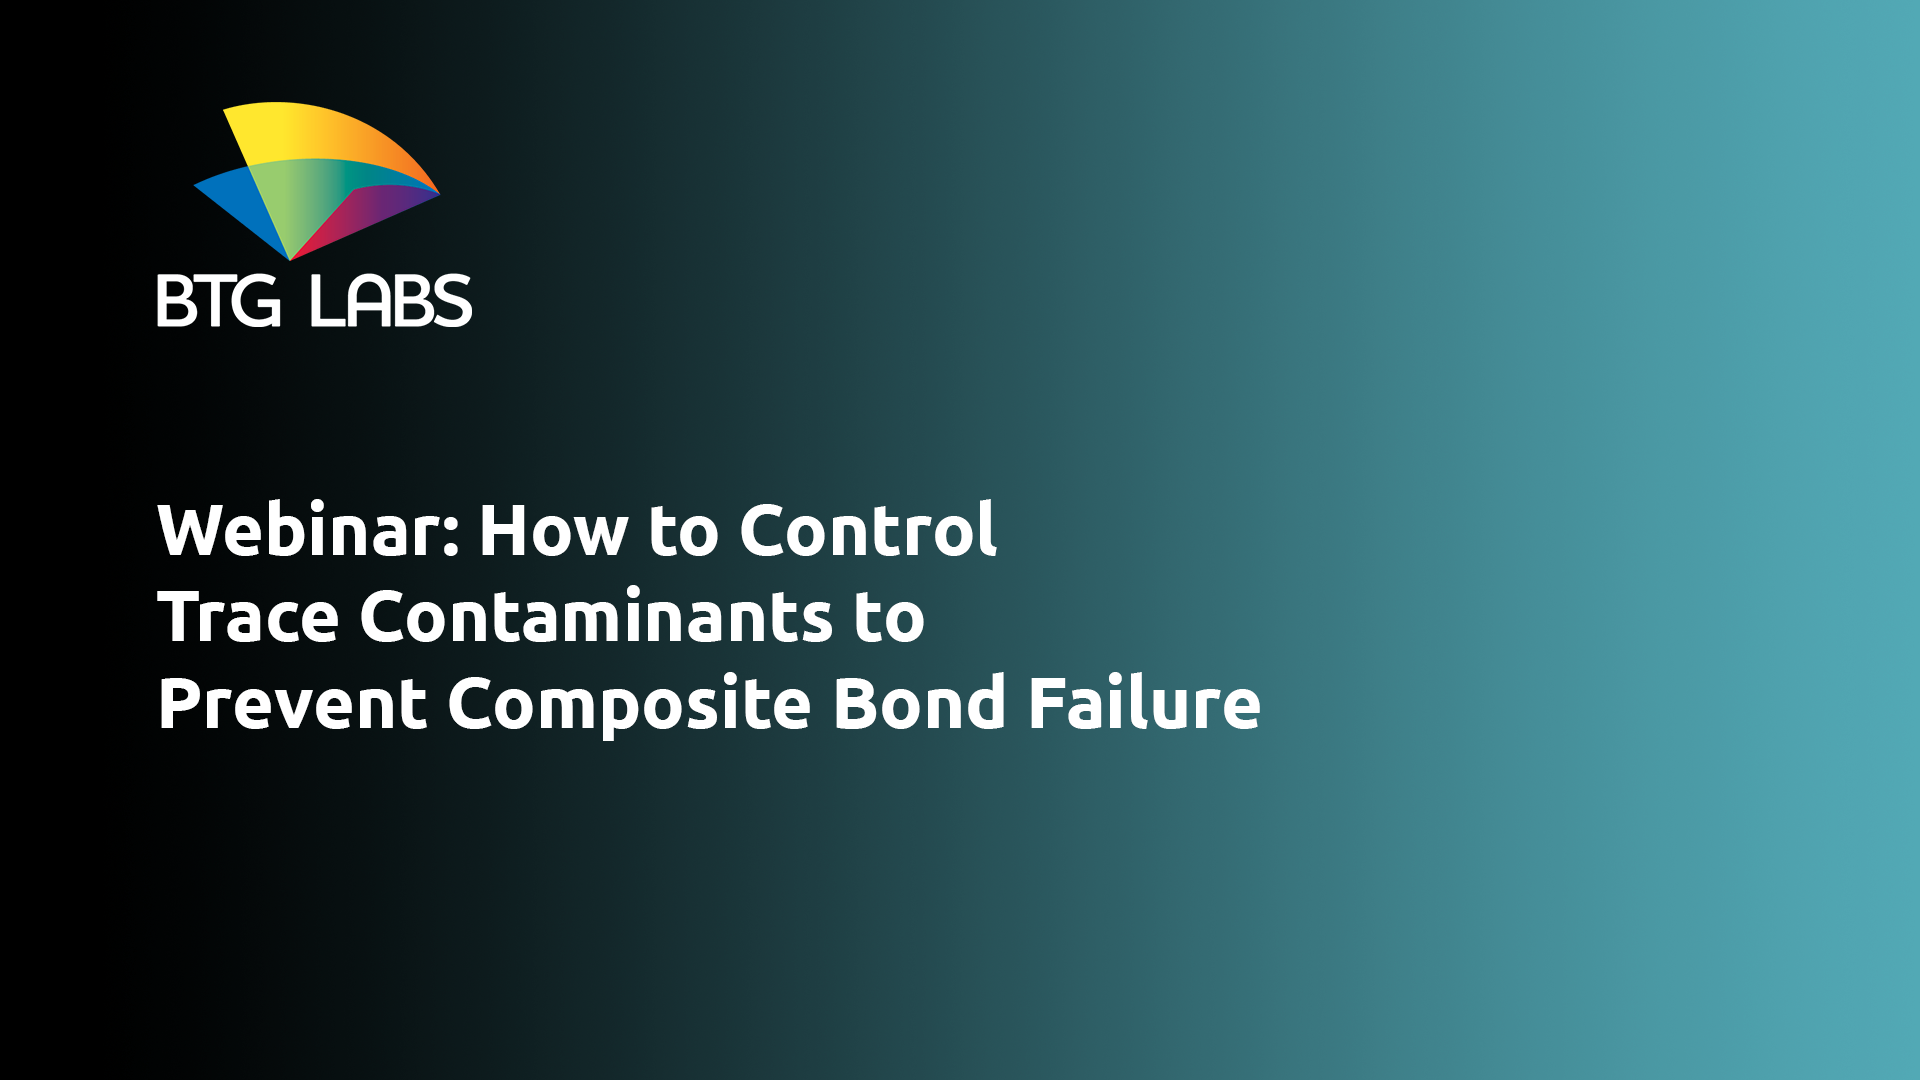 composites-world-how-to-control-trace-contaminants-to-prevent-composite-bond-failure-webinar-1